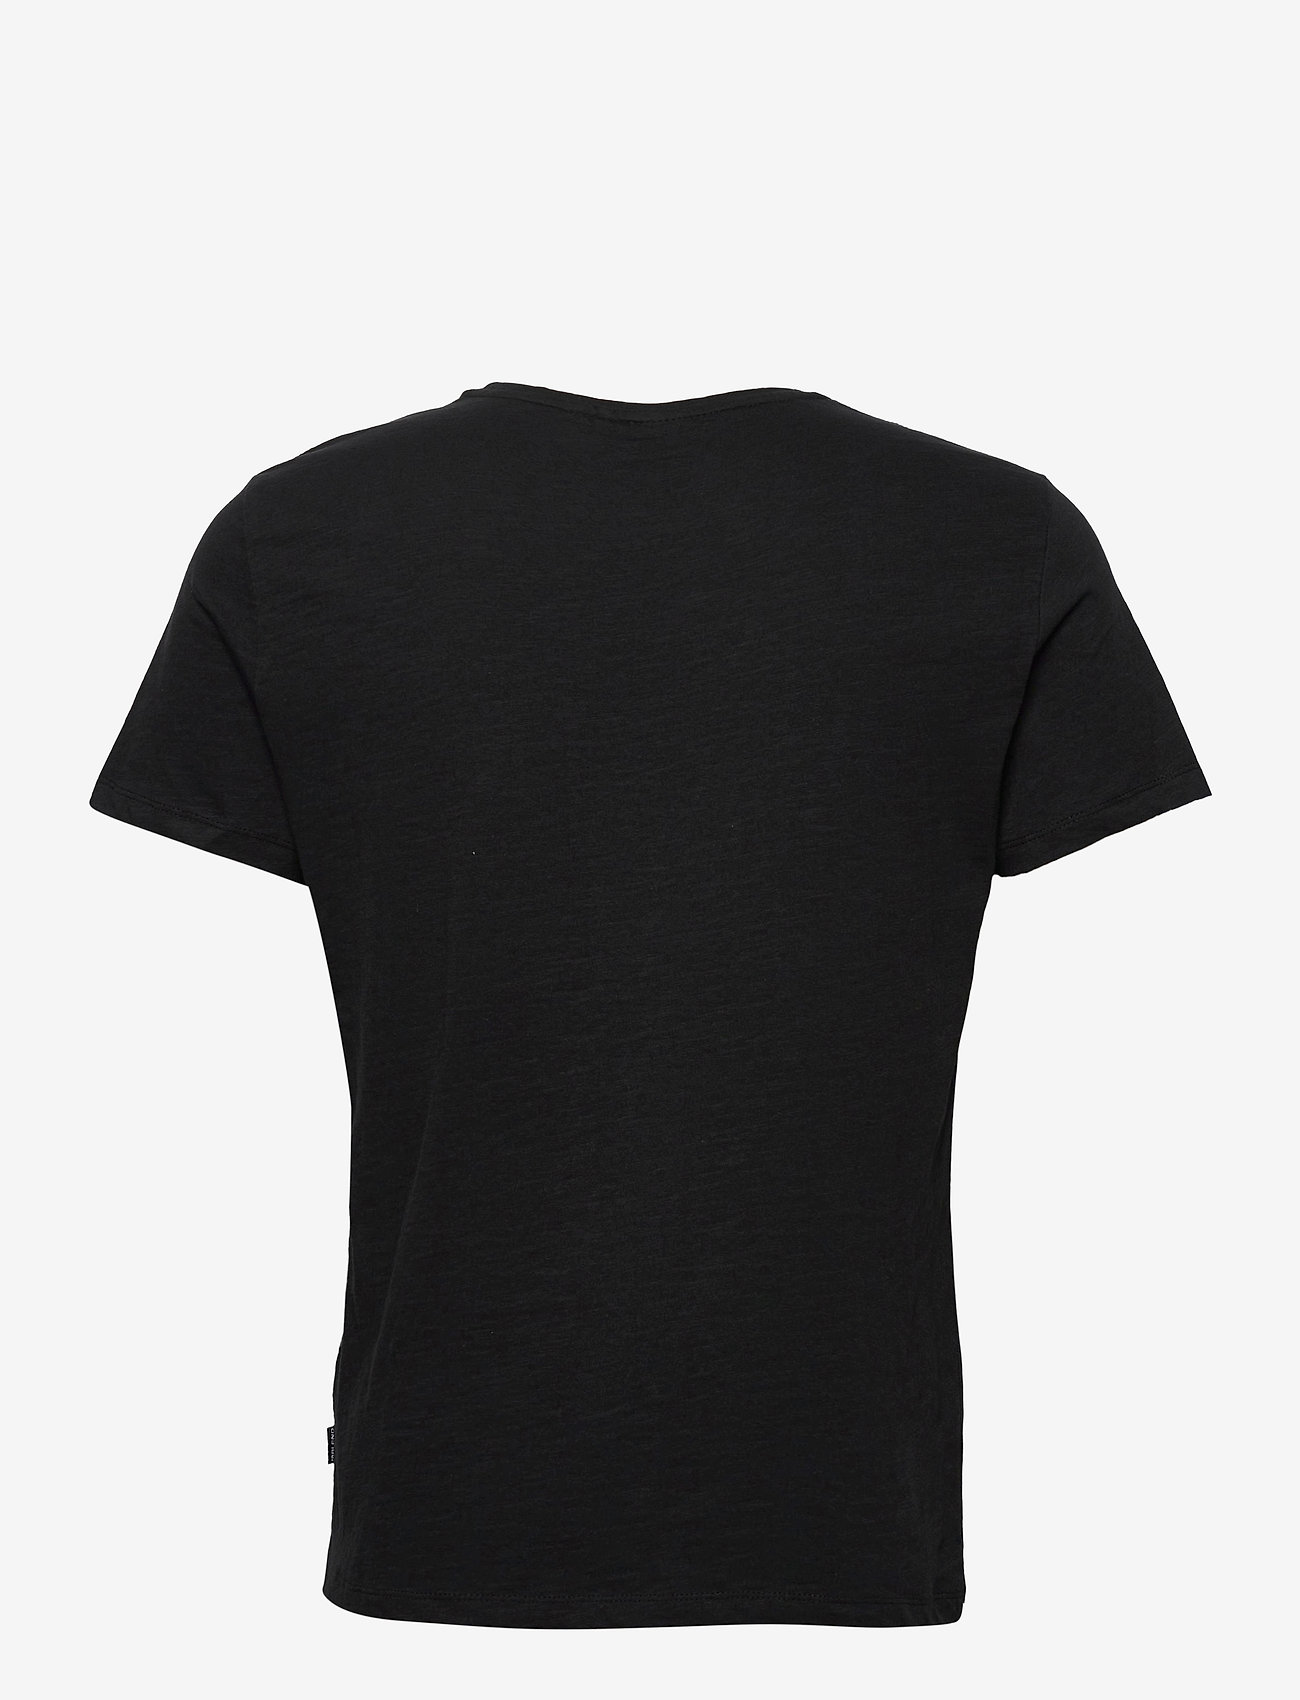 Blend - Tee - t-shirts à manches courtes - black - 1